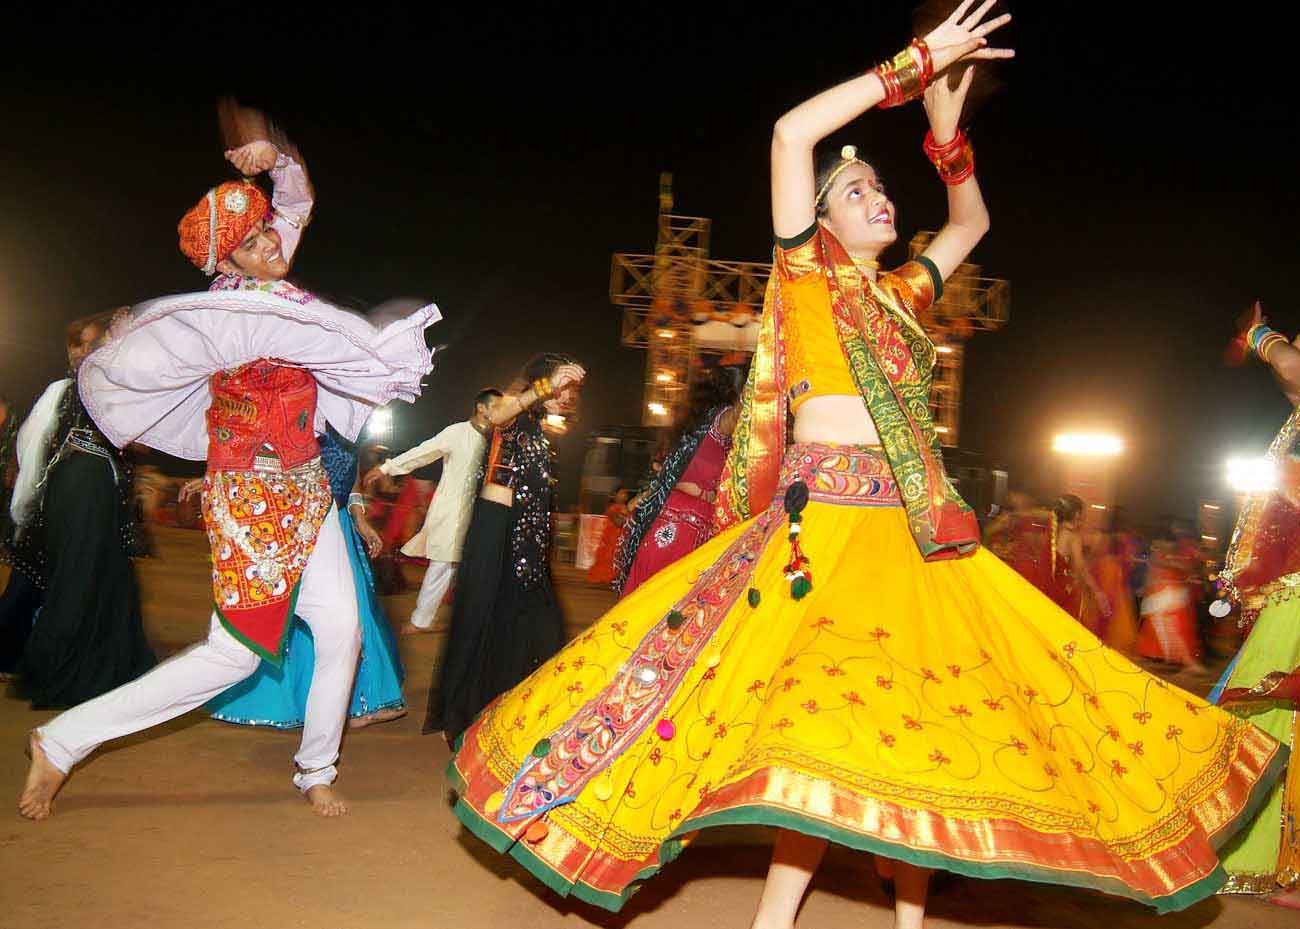 Youngsters enjoying Garba during Navratris. (Image: Weddingwowideas.com)